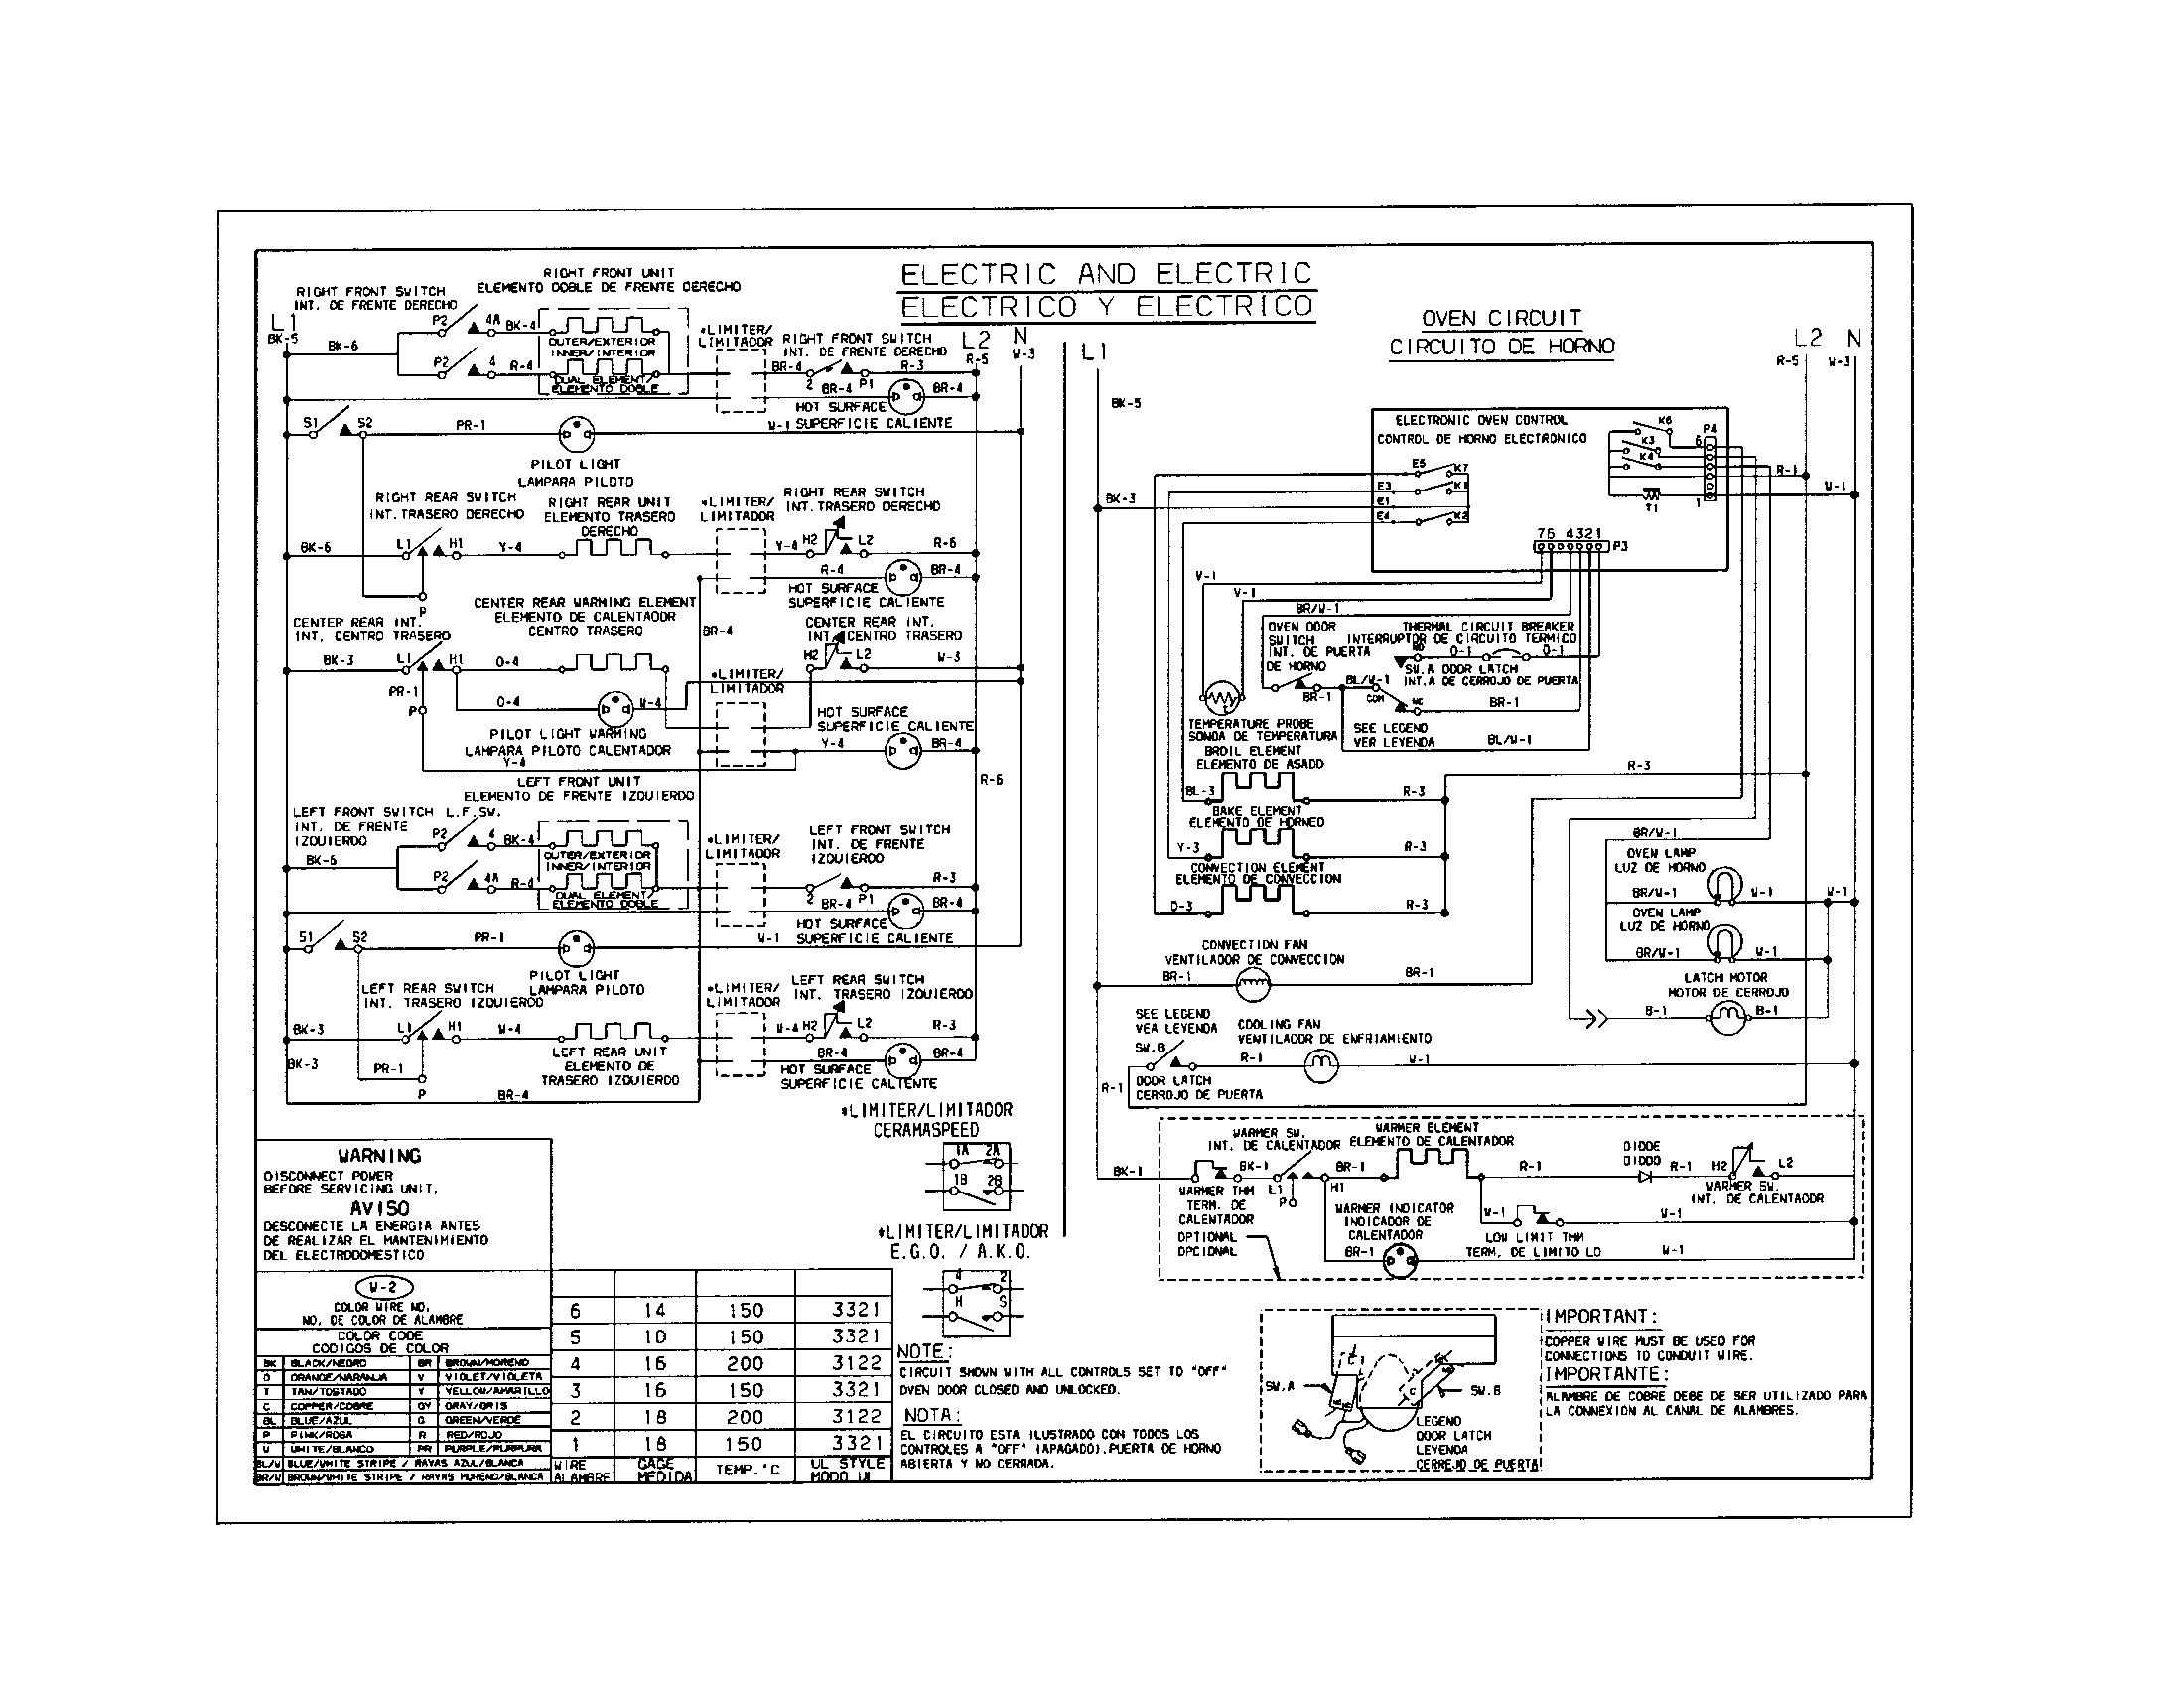 kenmore dryer power cord wiring diagram Collection-gallery of Wiring Diagram for Kenmore Dryer Best Cool Kenmore 665 Wiring Schematic Inspiration 14-q